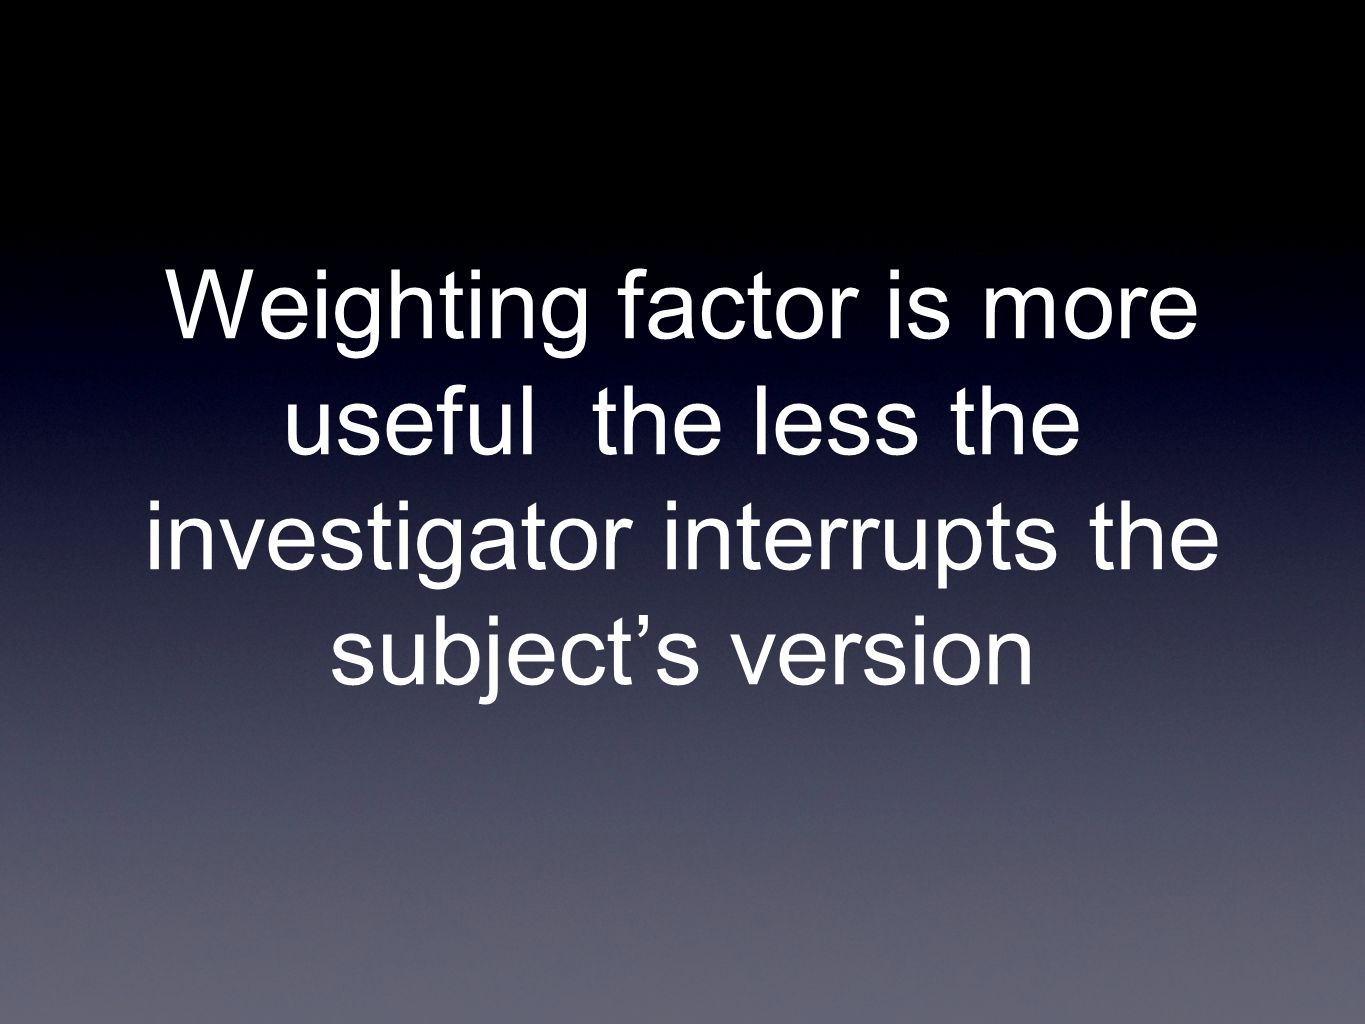 Weighting factor is more useful the less the investigator interrupts the subject's version